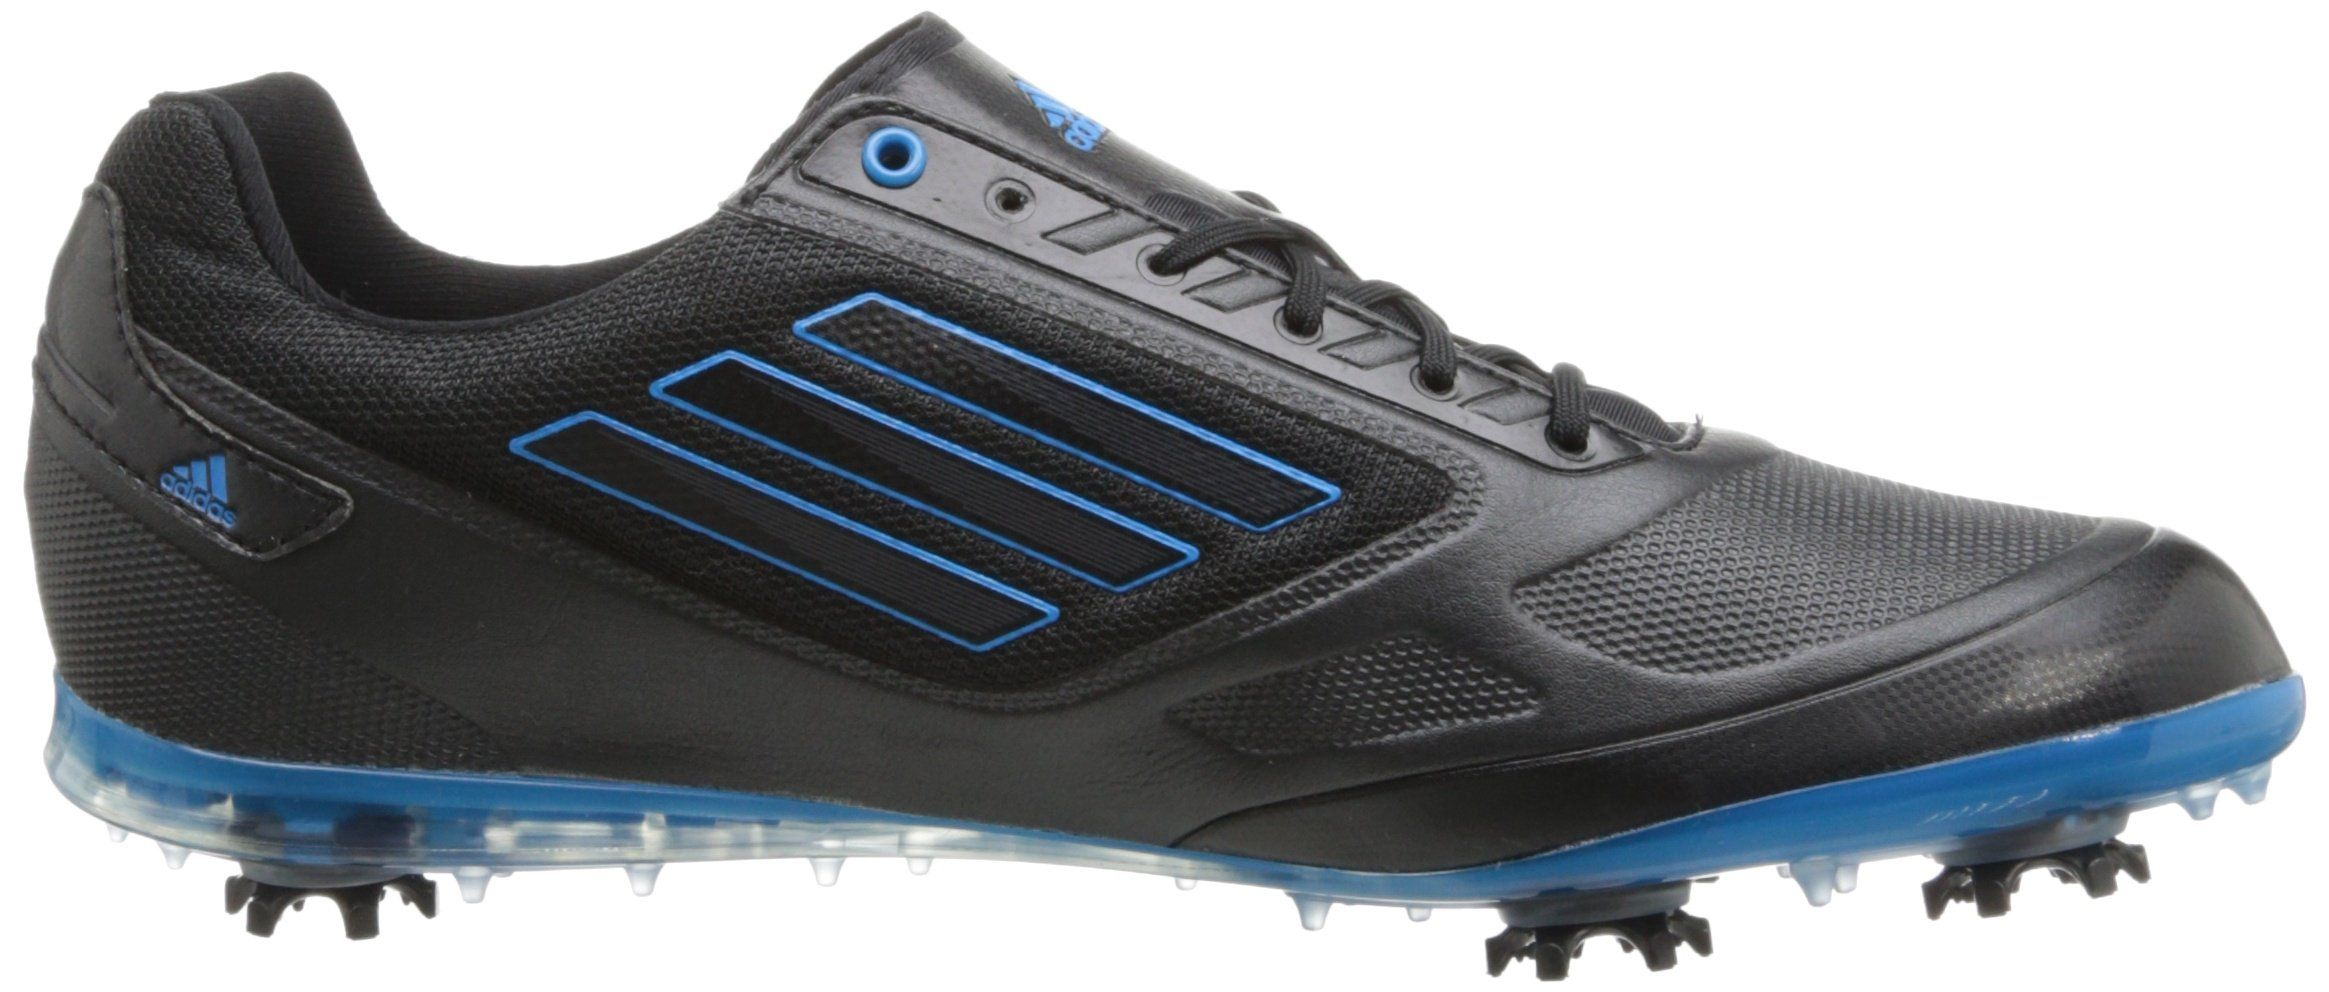 a691dd24f86 Golf Shoes     adidas Womens Adizero Tour II Spiked Golf ShoeBlack Black Solar  Blue6 M US     Find out more by going to the picture web link.